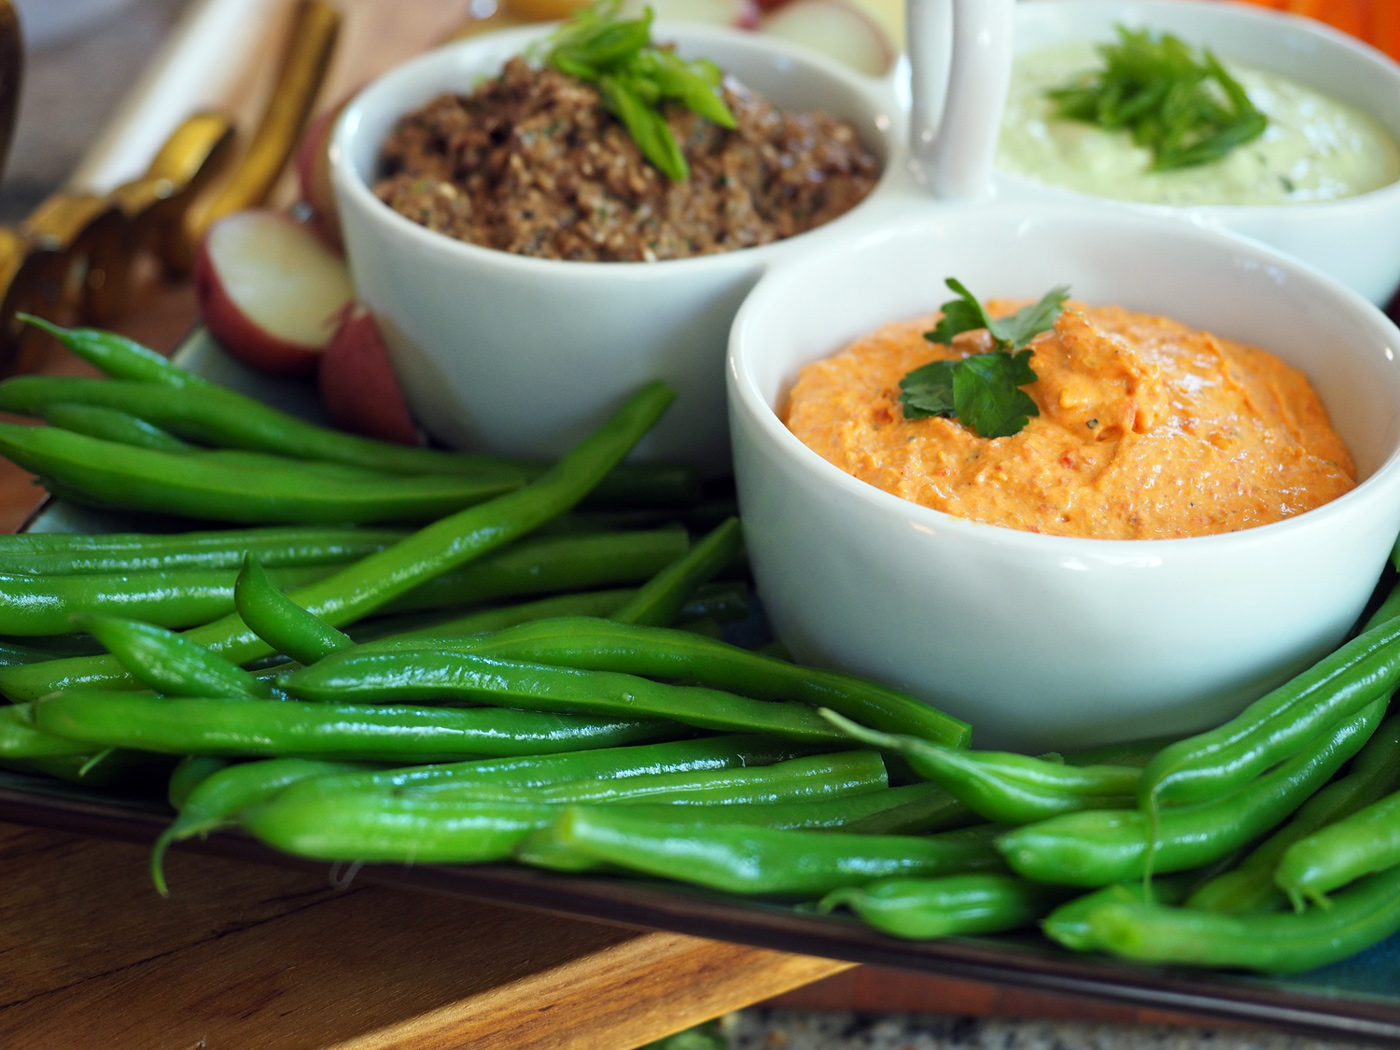 Bright, crunchy and super green string beans are a fresh and delightful addition to this platter.